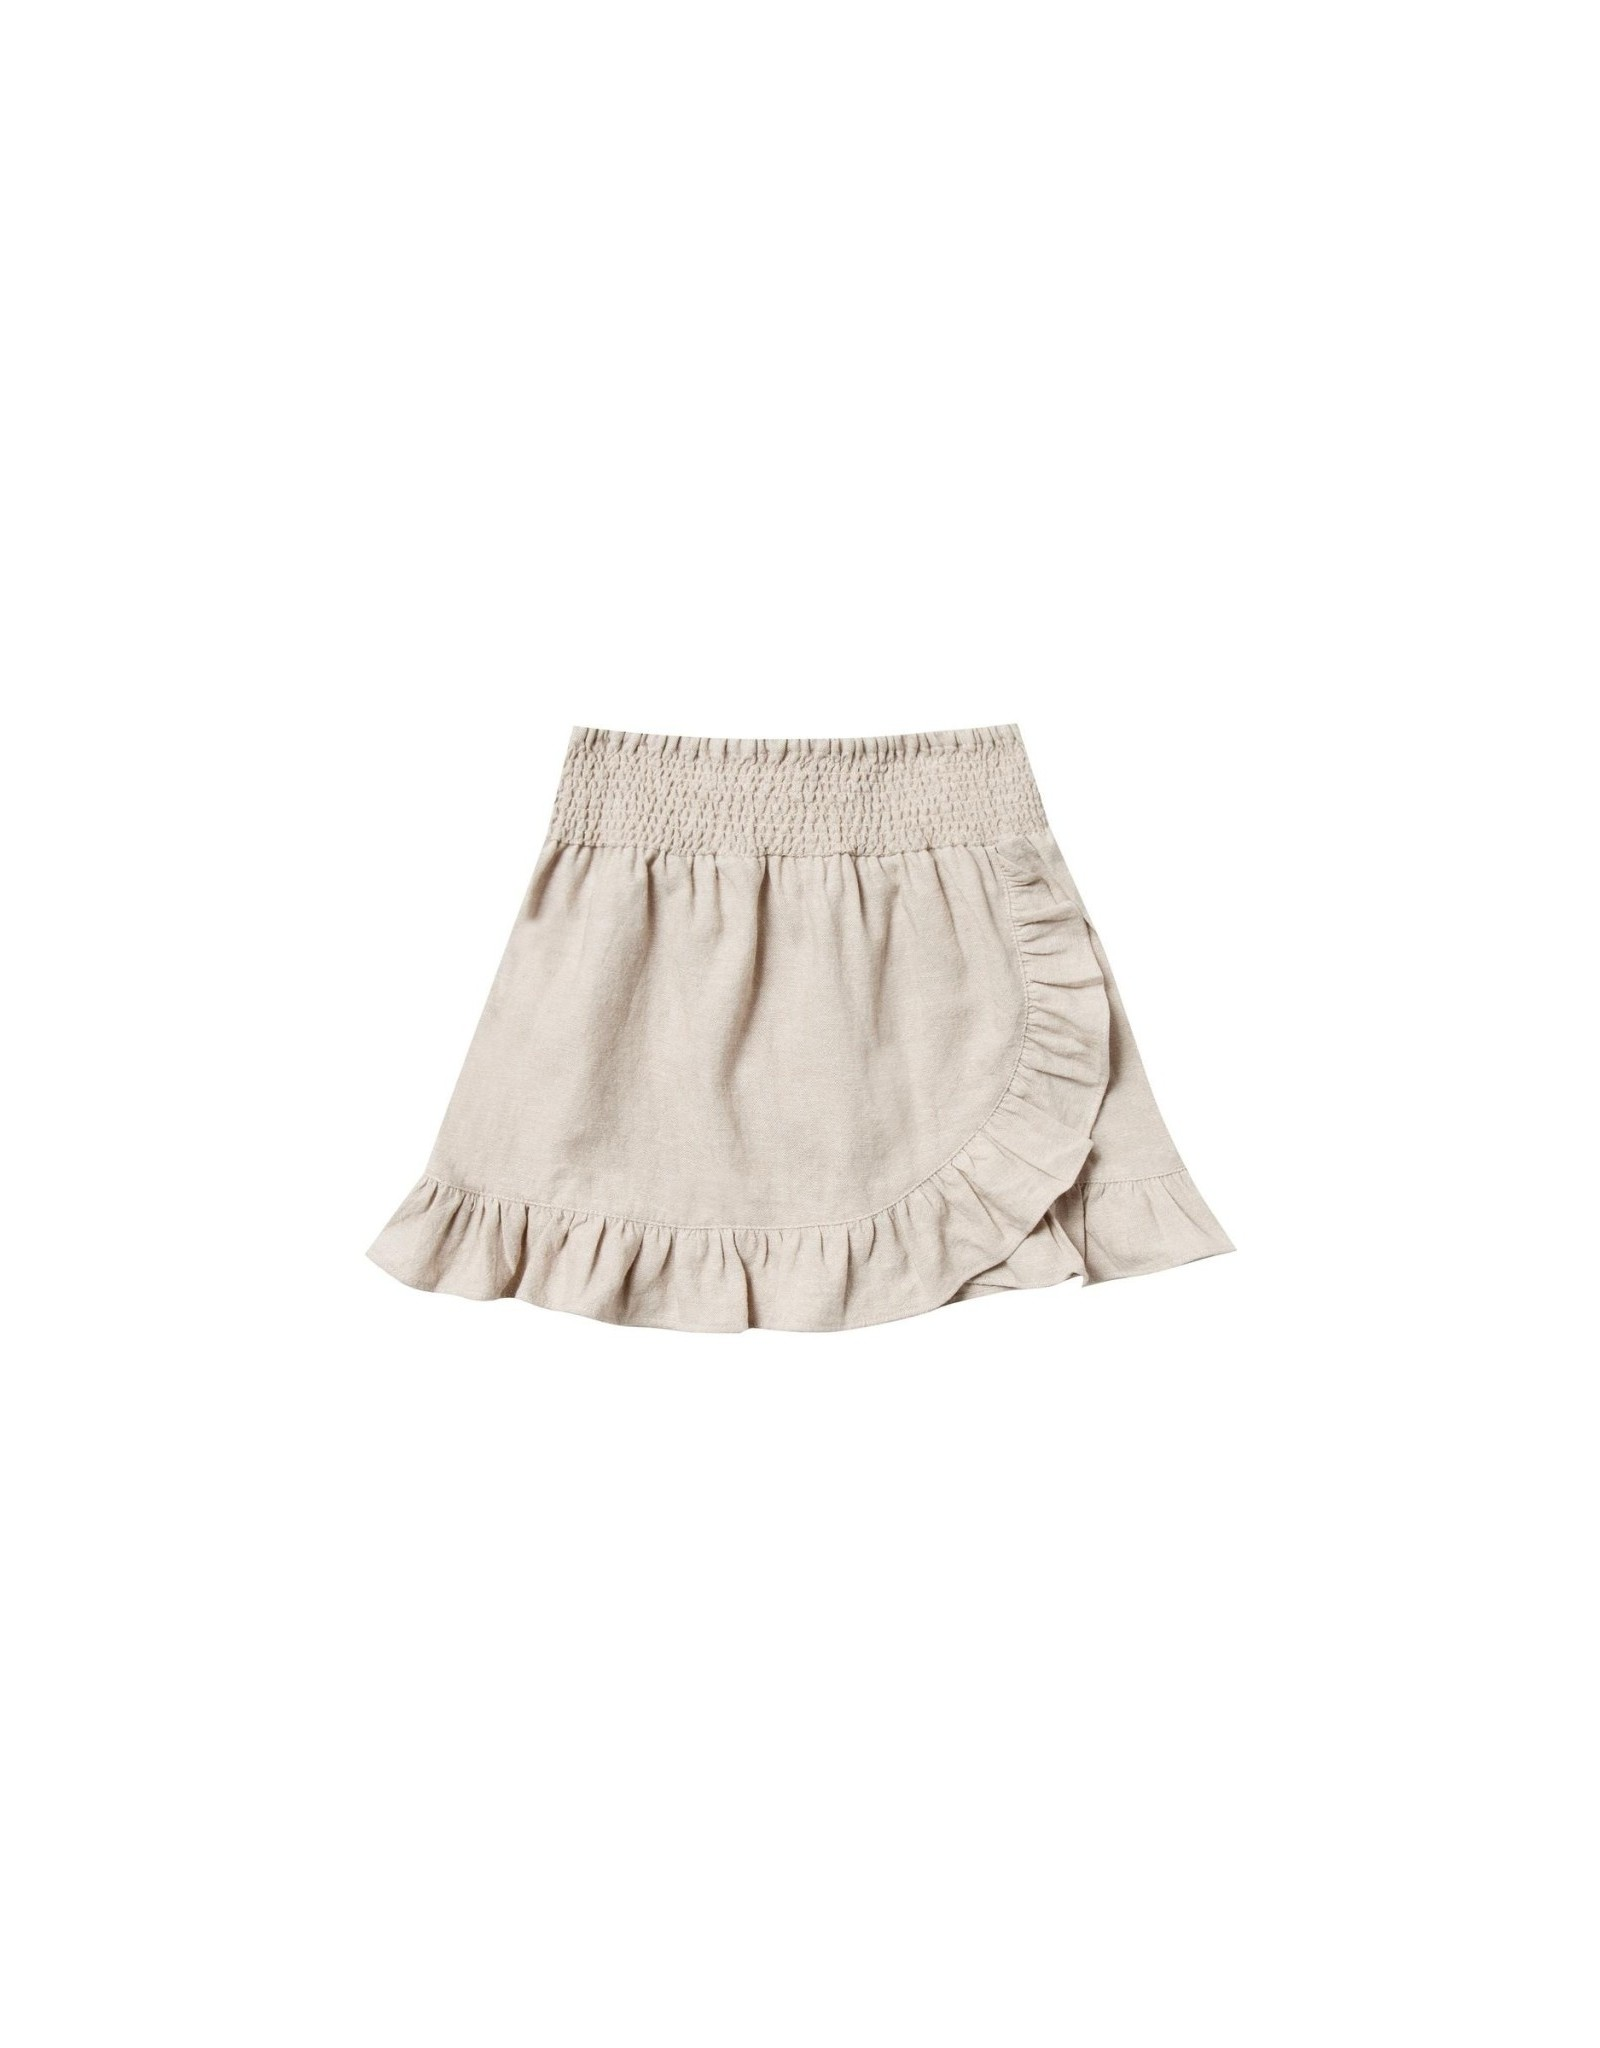 Rylee and Cru flora wrap skirt- flax